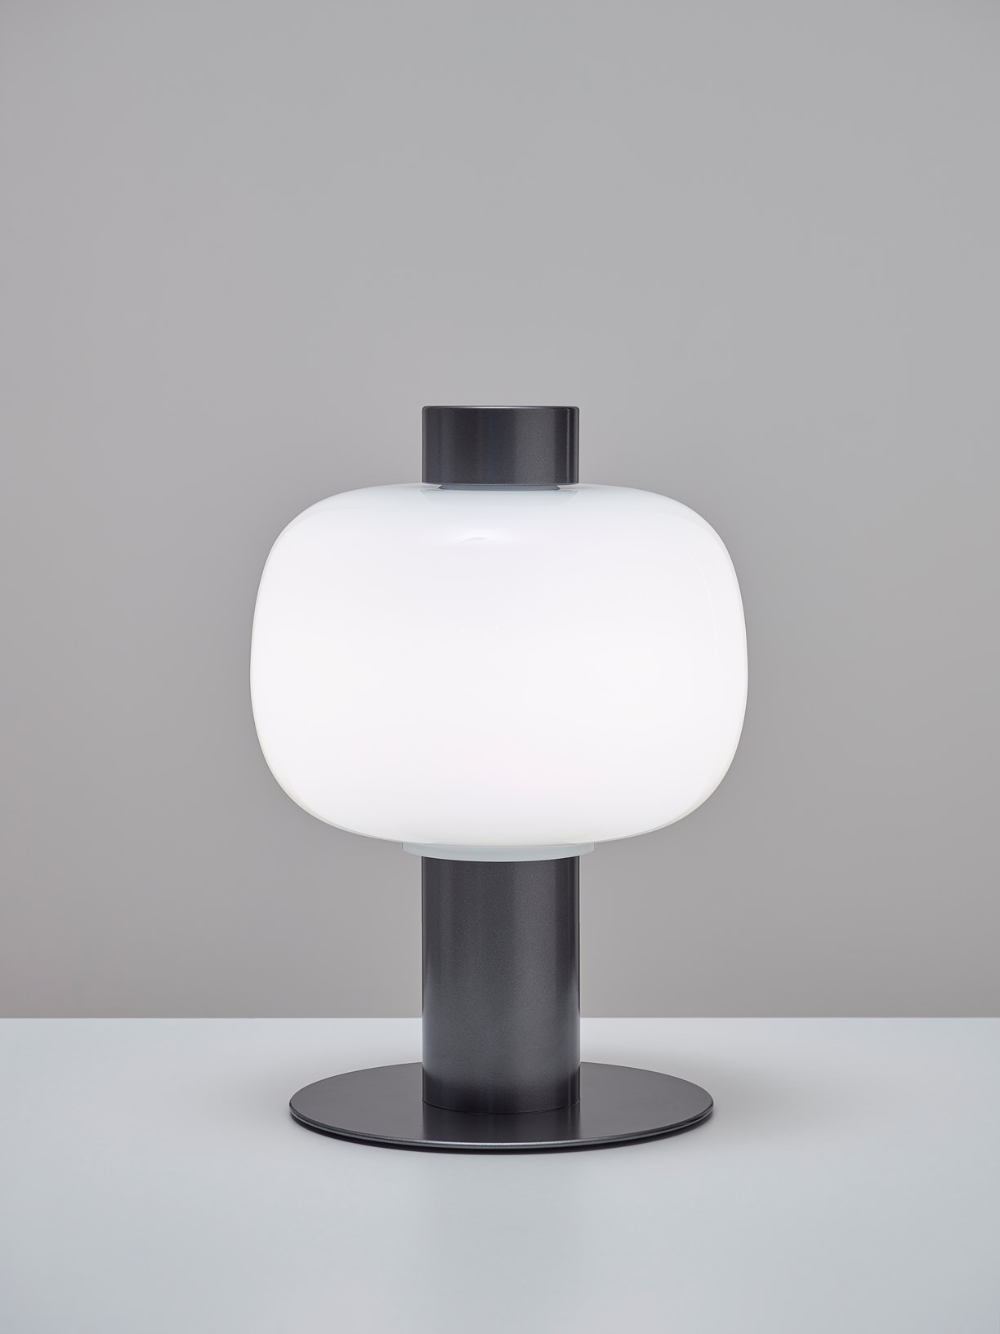 Glass Lamps Inspired by the Traditional Japanese Paper Lamps